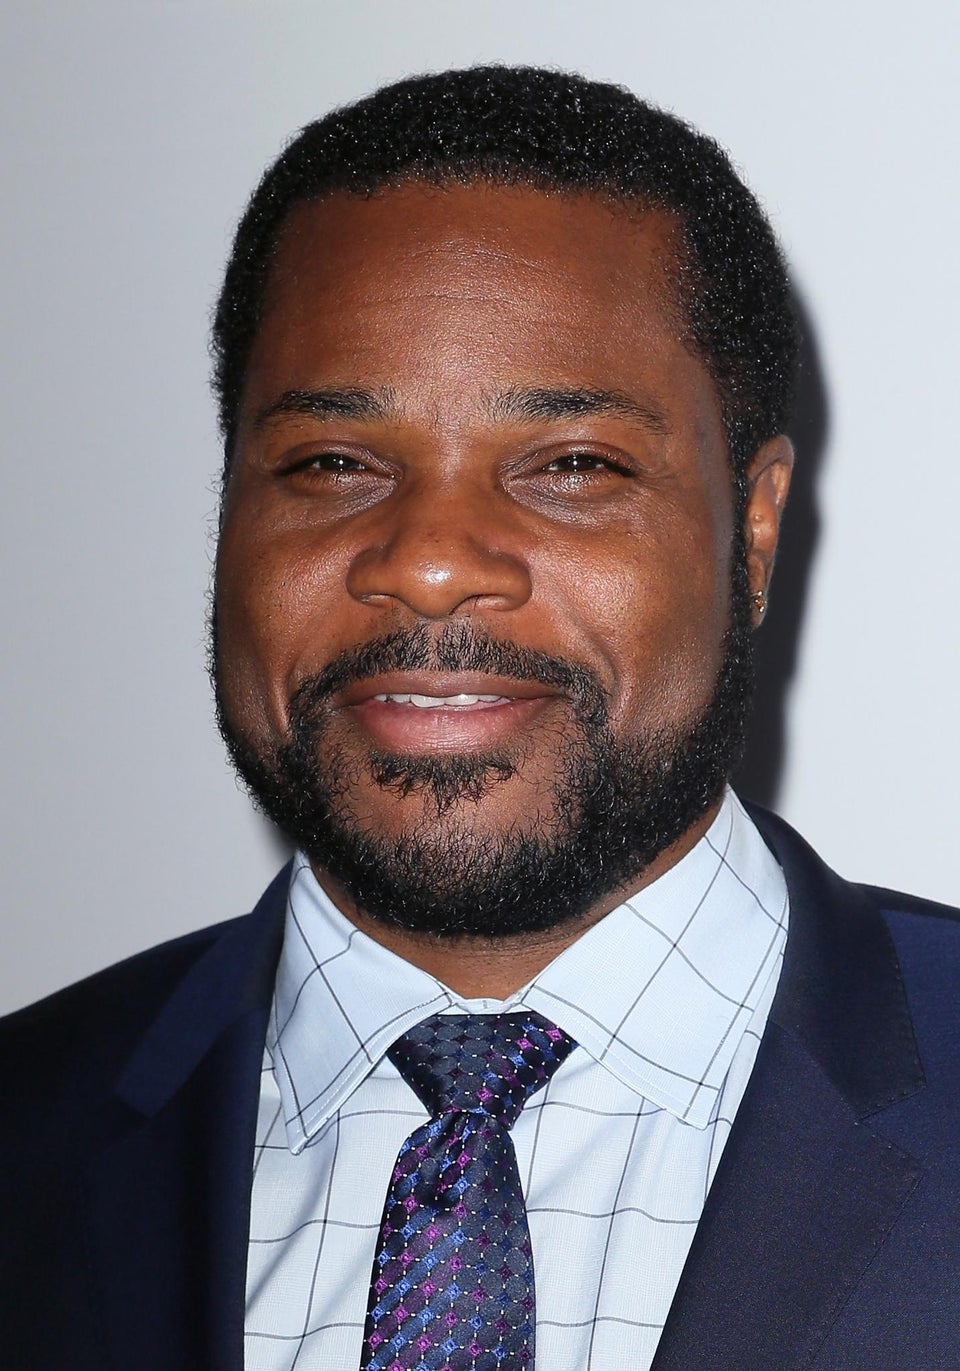 Malcolm-Jamal Warner on Cosby Allegations: 'It's Painful to Watch'